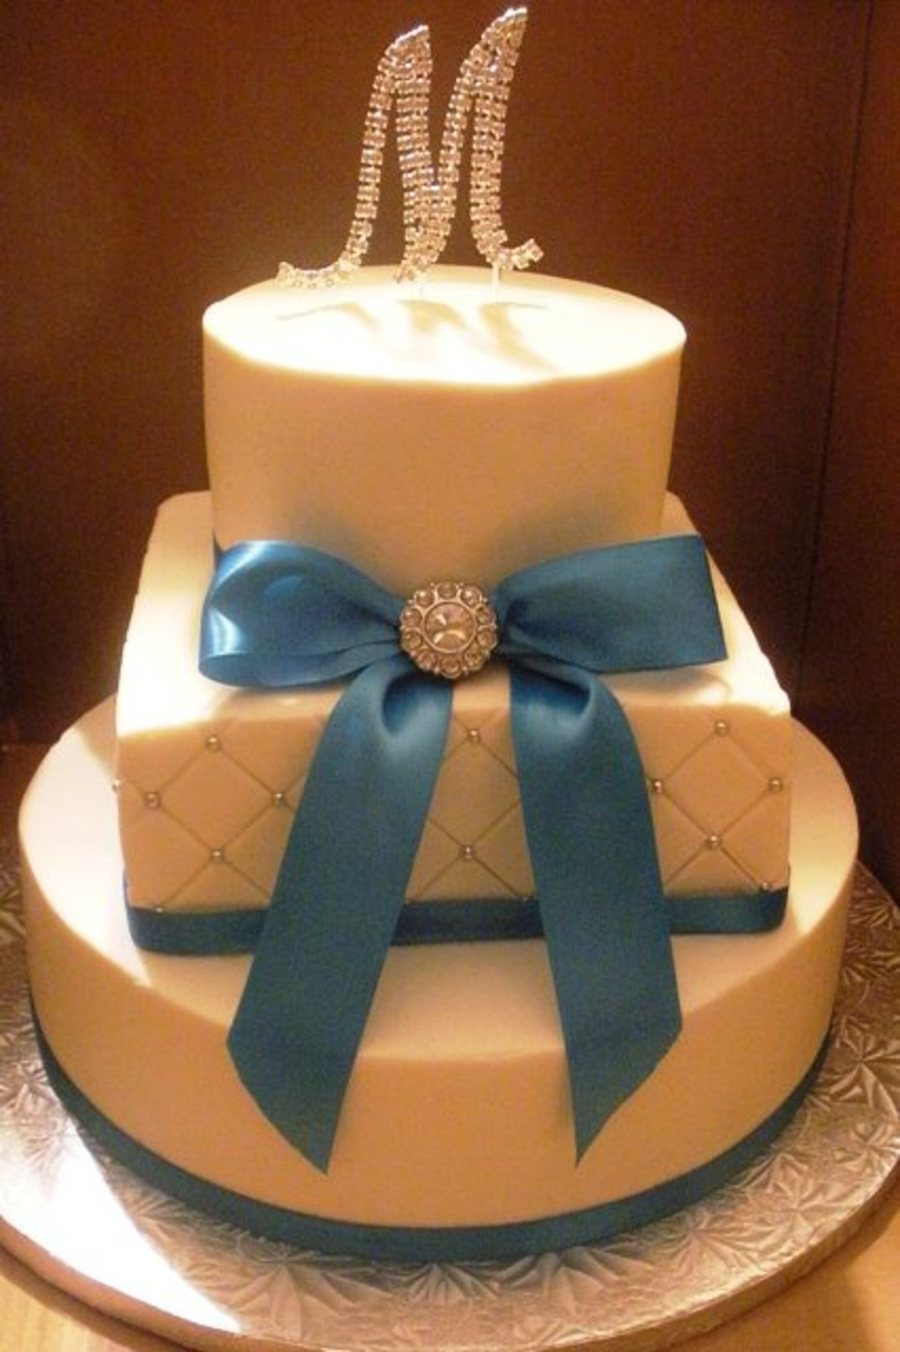 malibu blue ribbon wedding cake. Black Bedroom Furniture Sets. Home Design Ideas